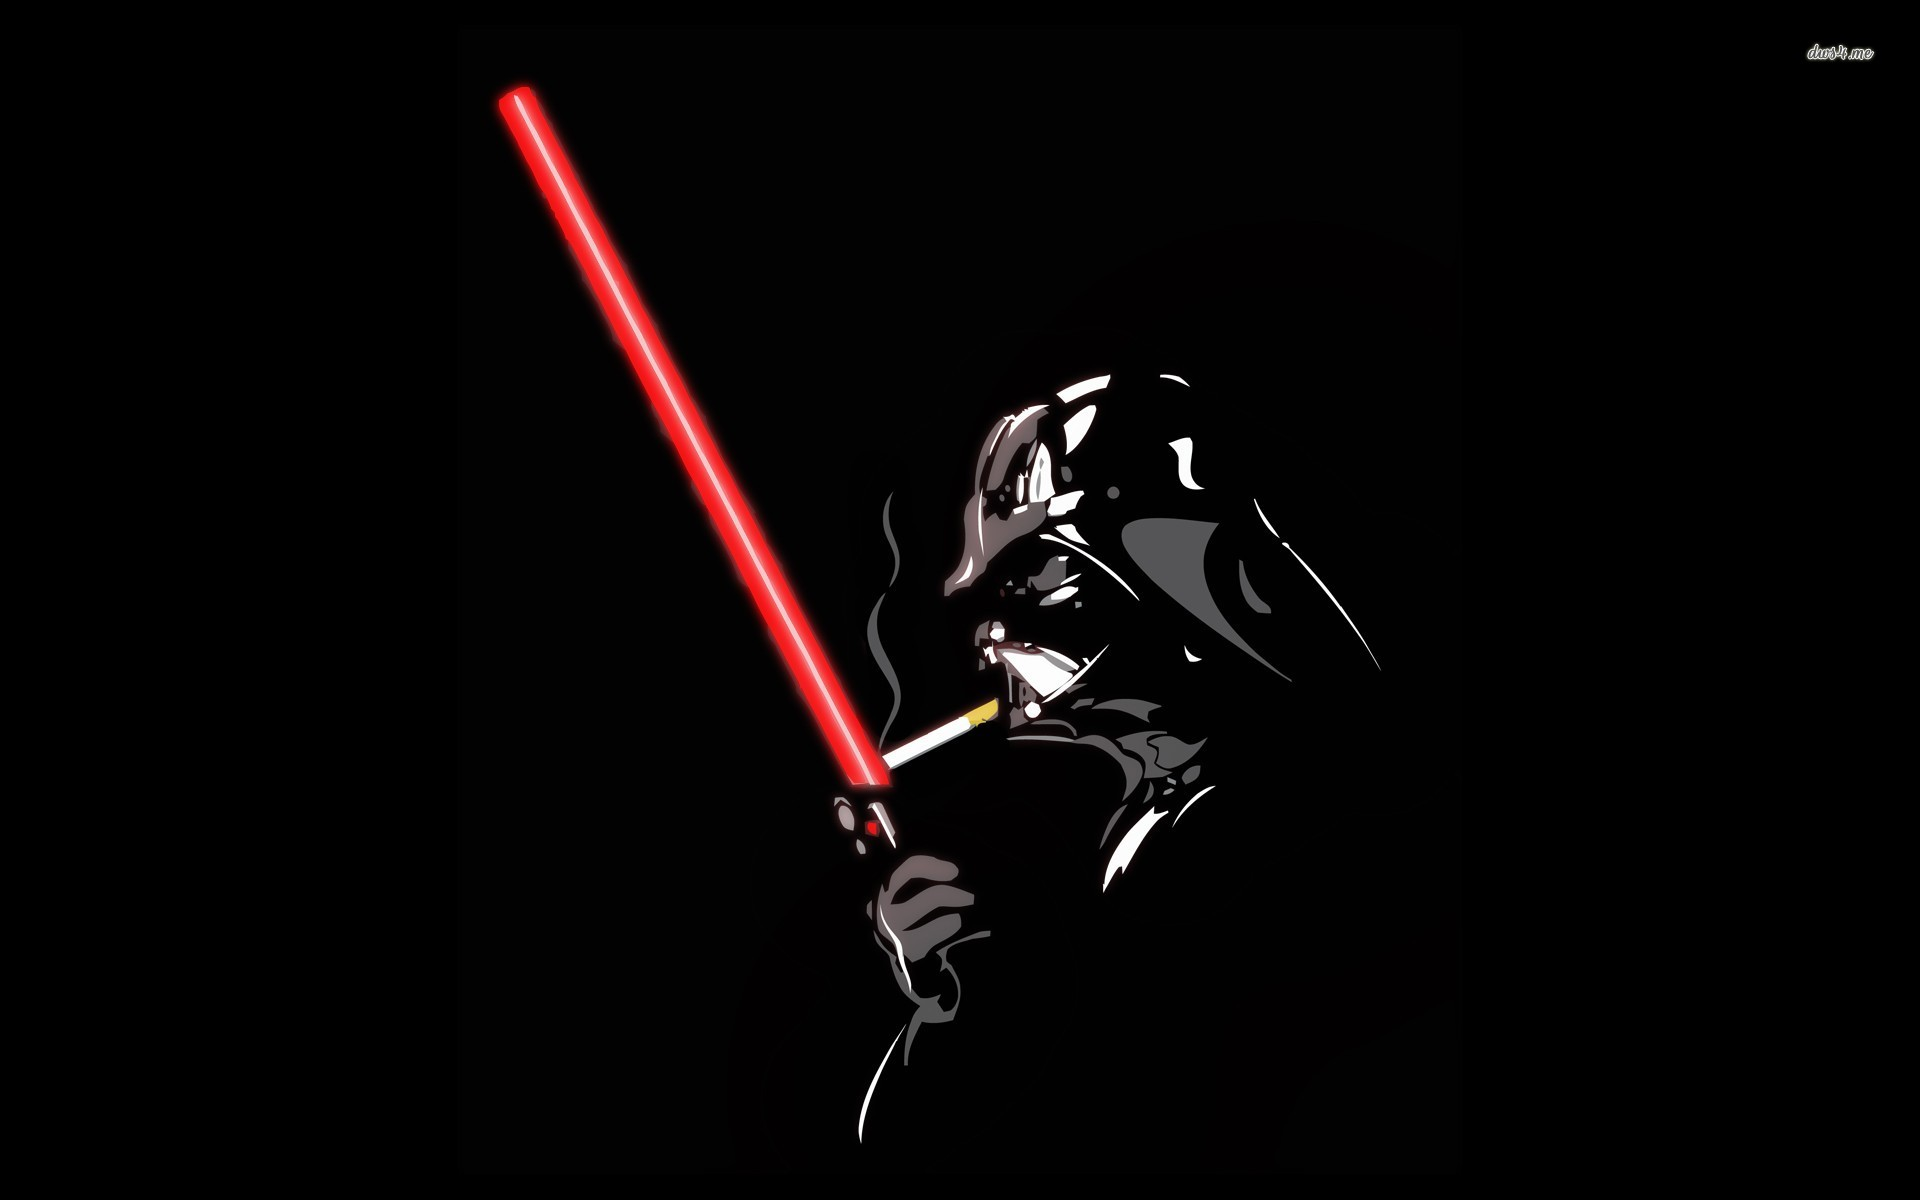 Darth Vader Wallpapers High Resolution And Quality Download